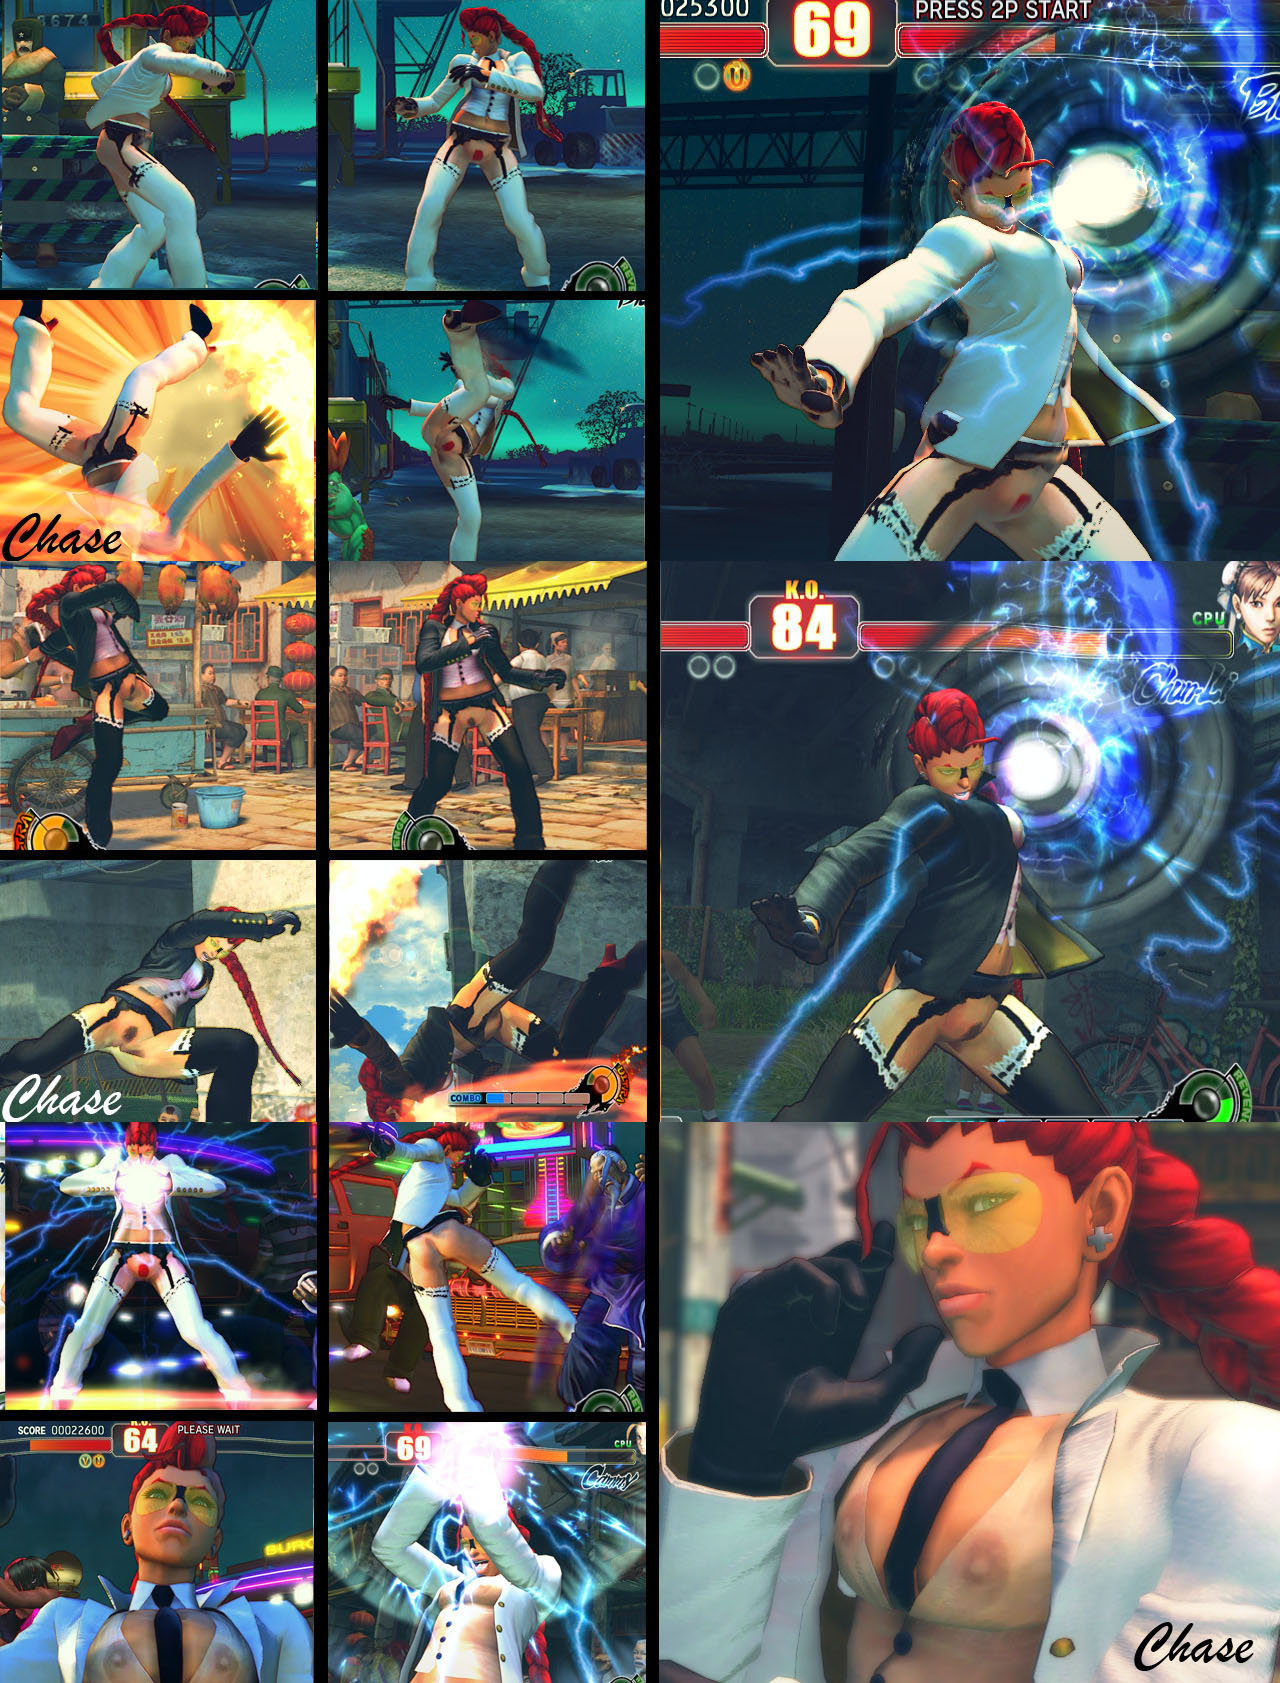 Street fighter iv c viper nude mod nsfw pics